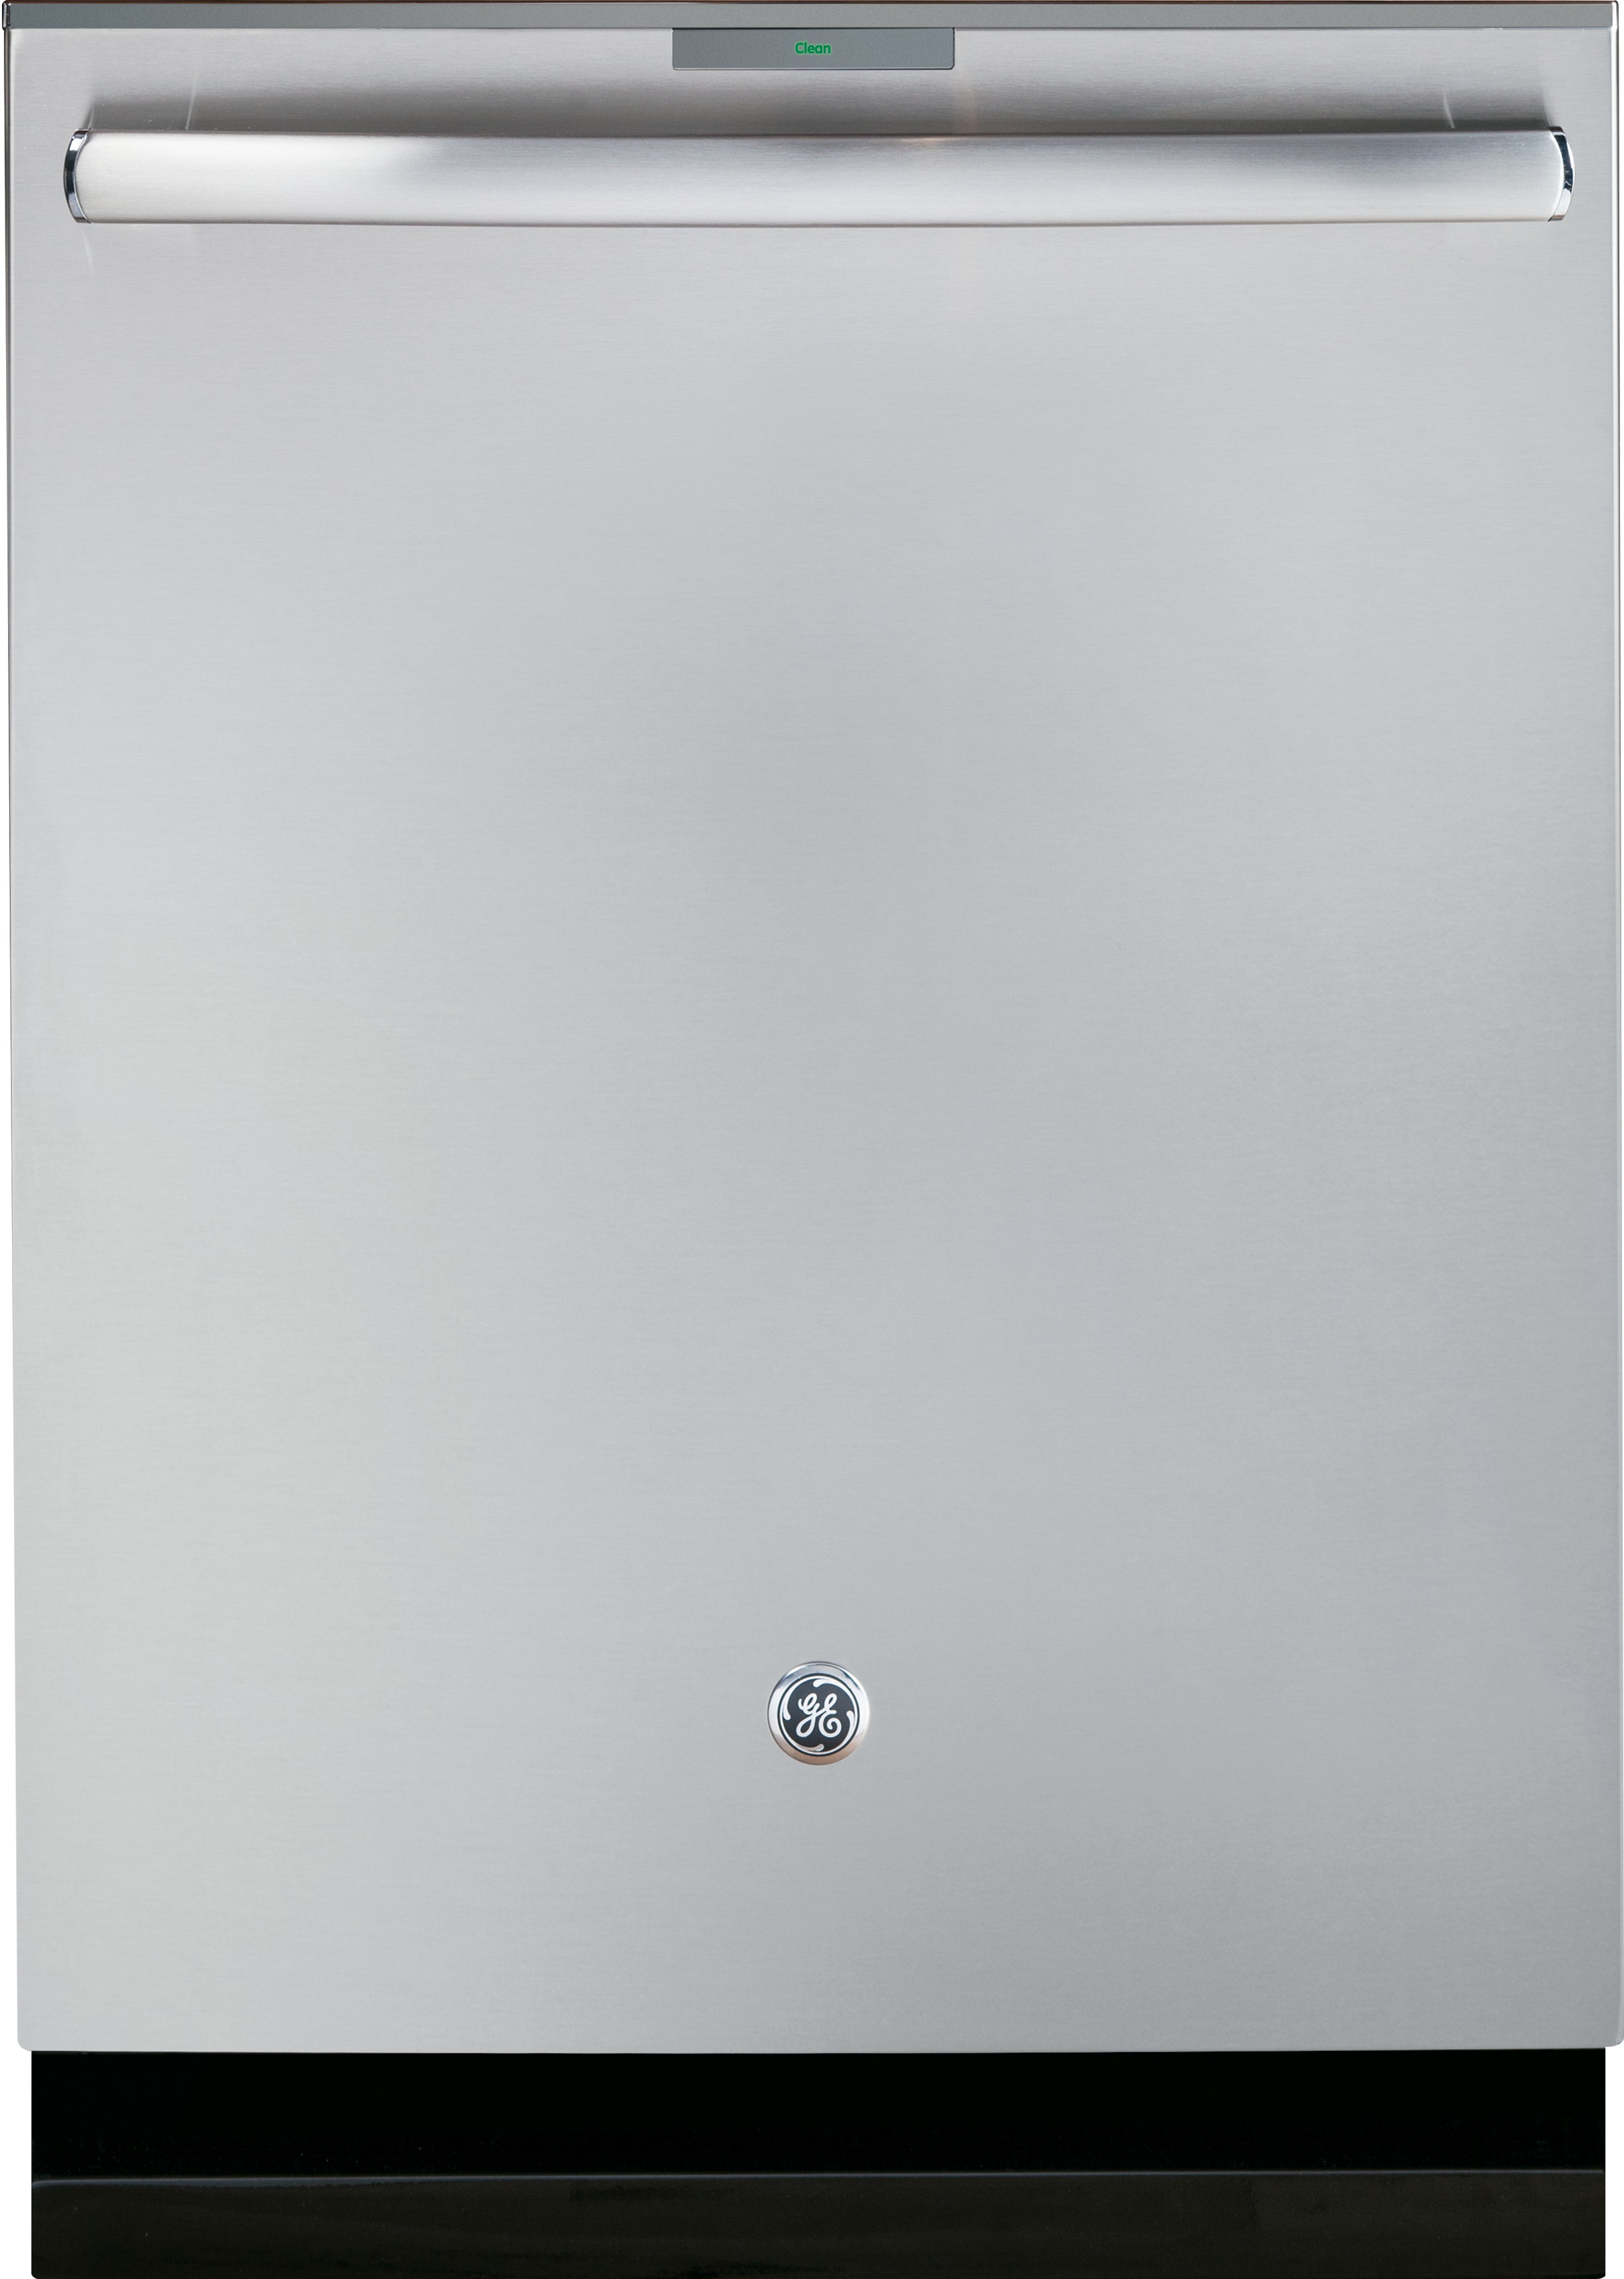 GE's new Profile PDT750SSFSS dishwasher